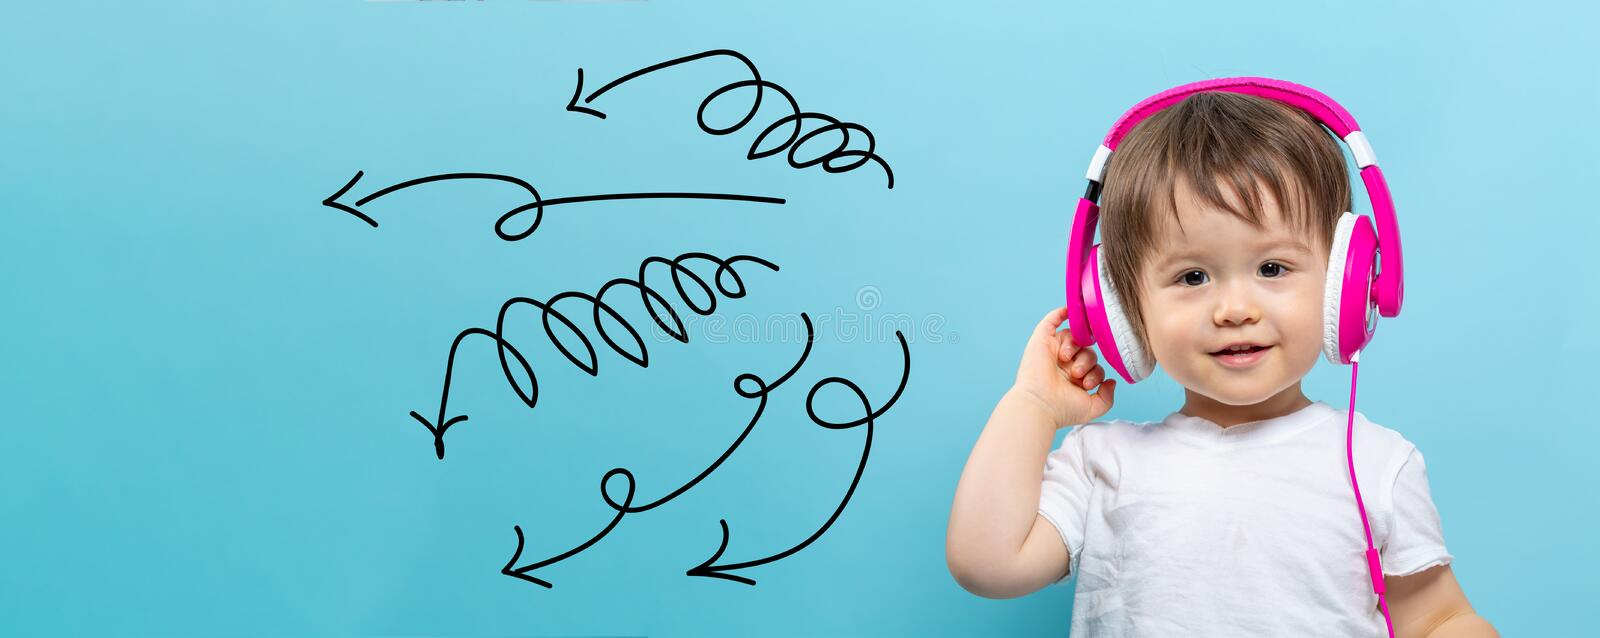 Curly arrows with toddler boy with headphones royalty free stock photo